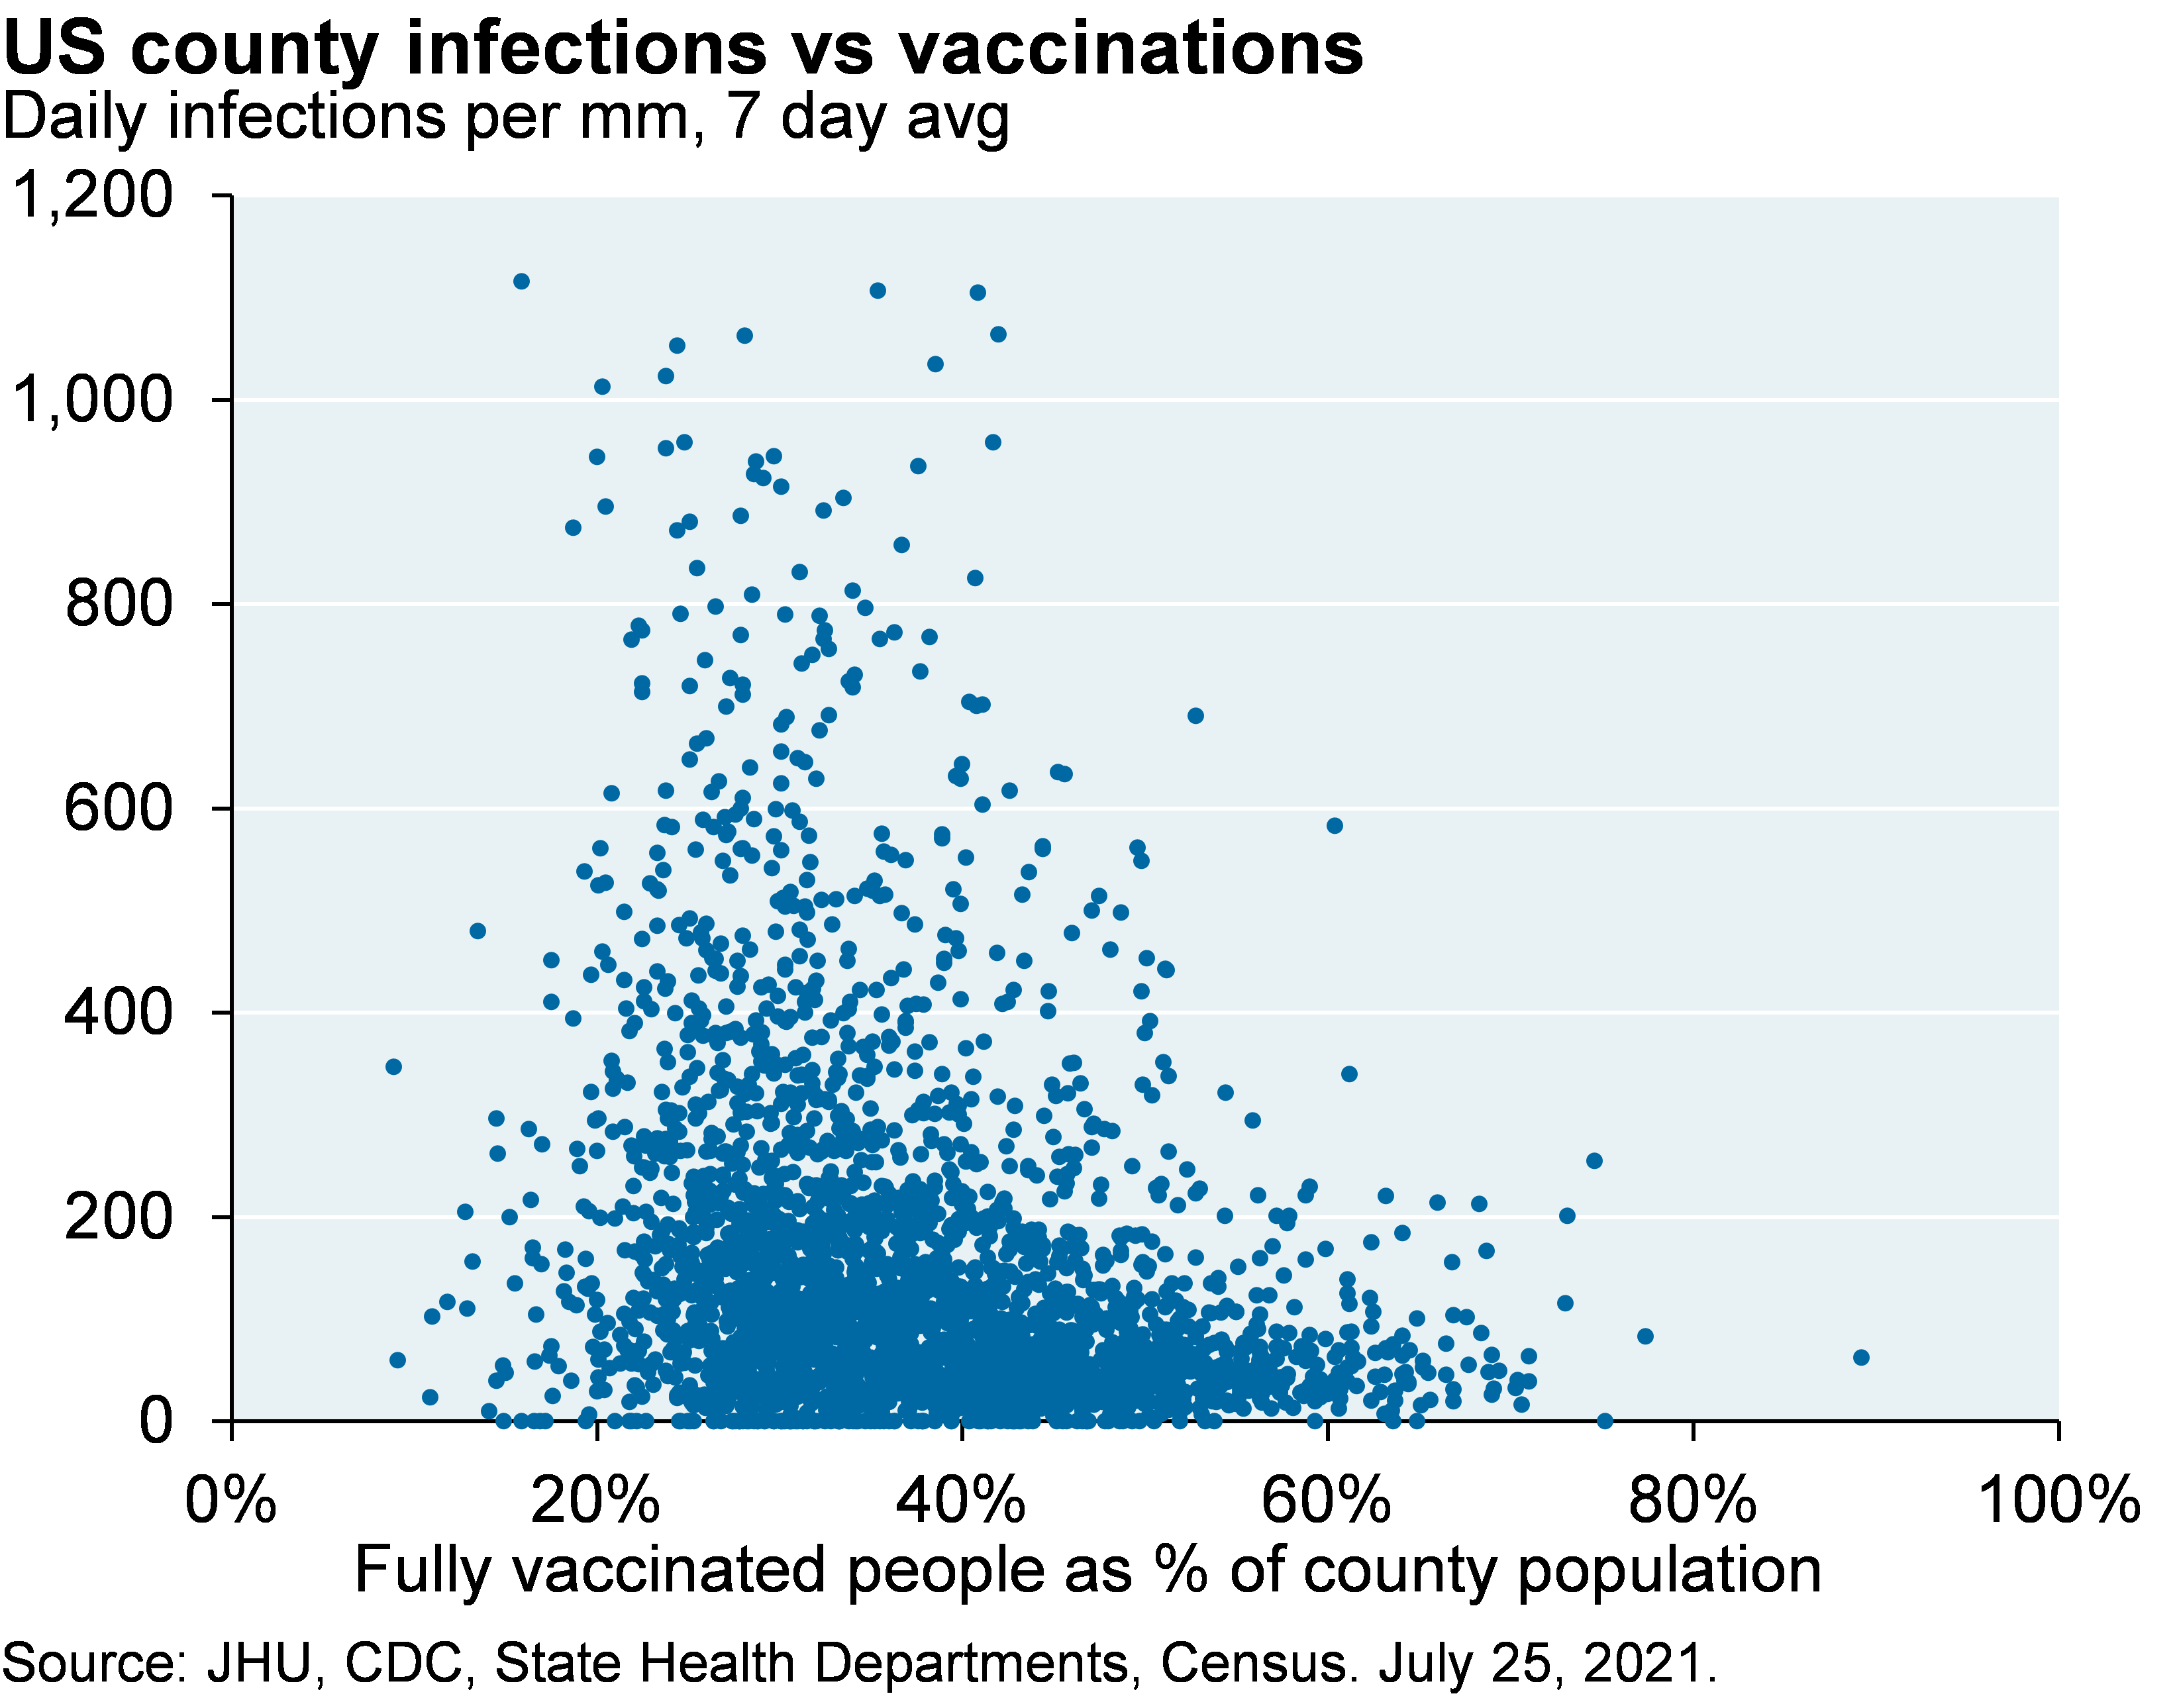 Scatter plot shows the 7 day average of daily infections per million people vs fully vaccinated people as a percentage of the population, where each dot represents a US county. While some outliers exits, most counties with higher vaccination rates have much lower infections rates.